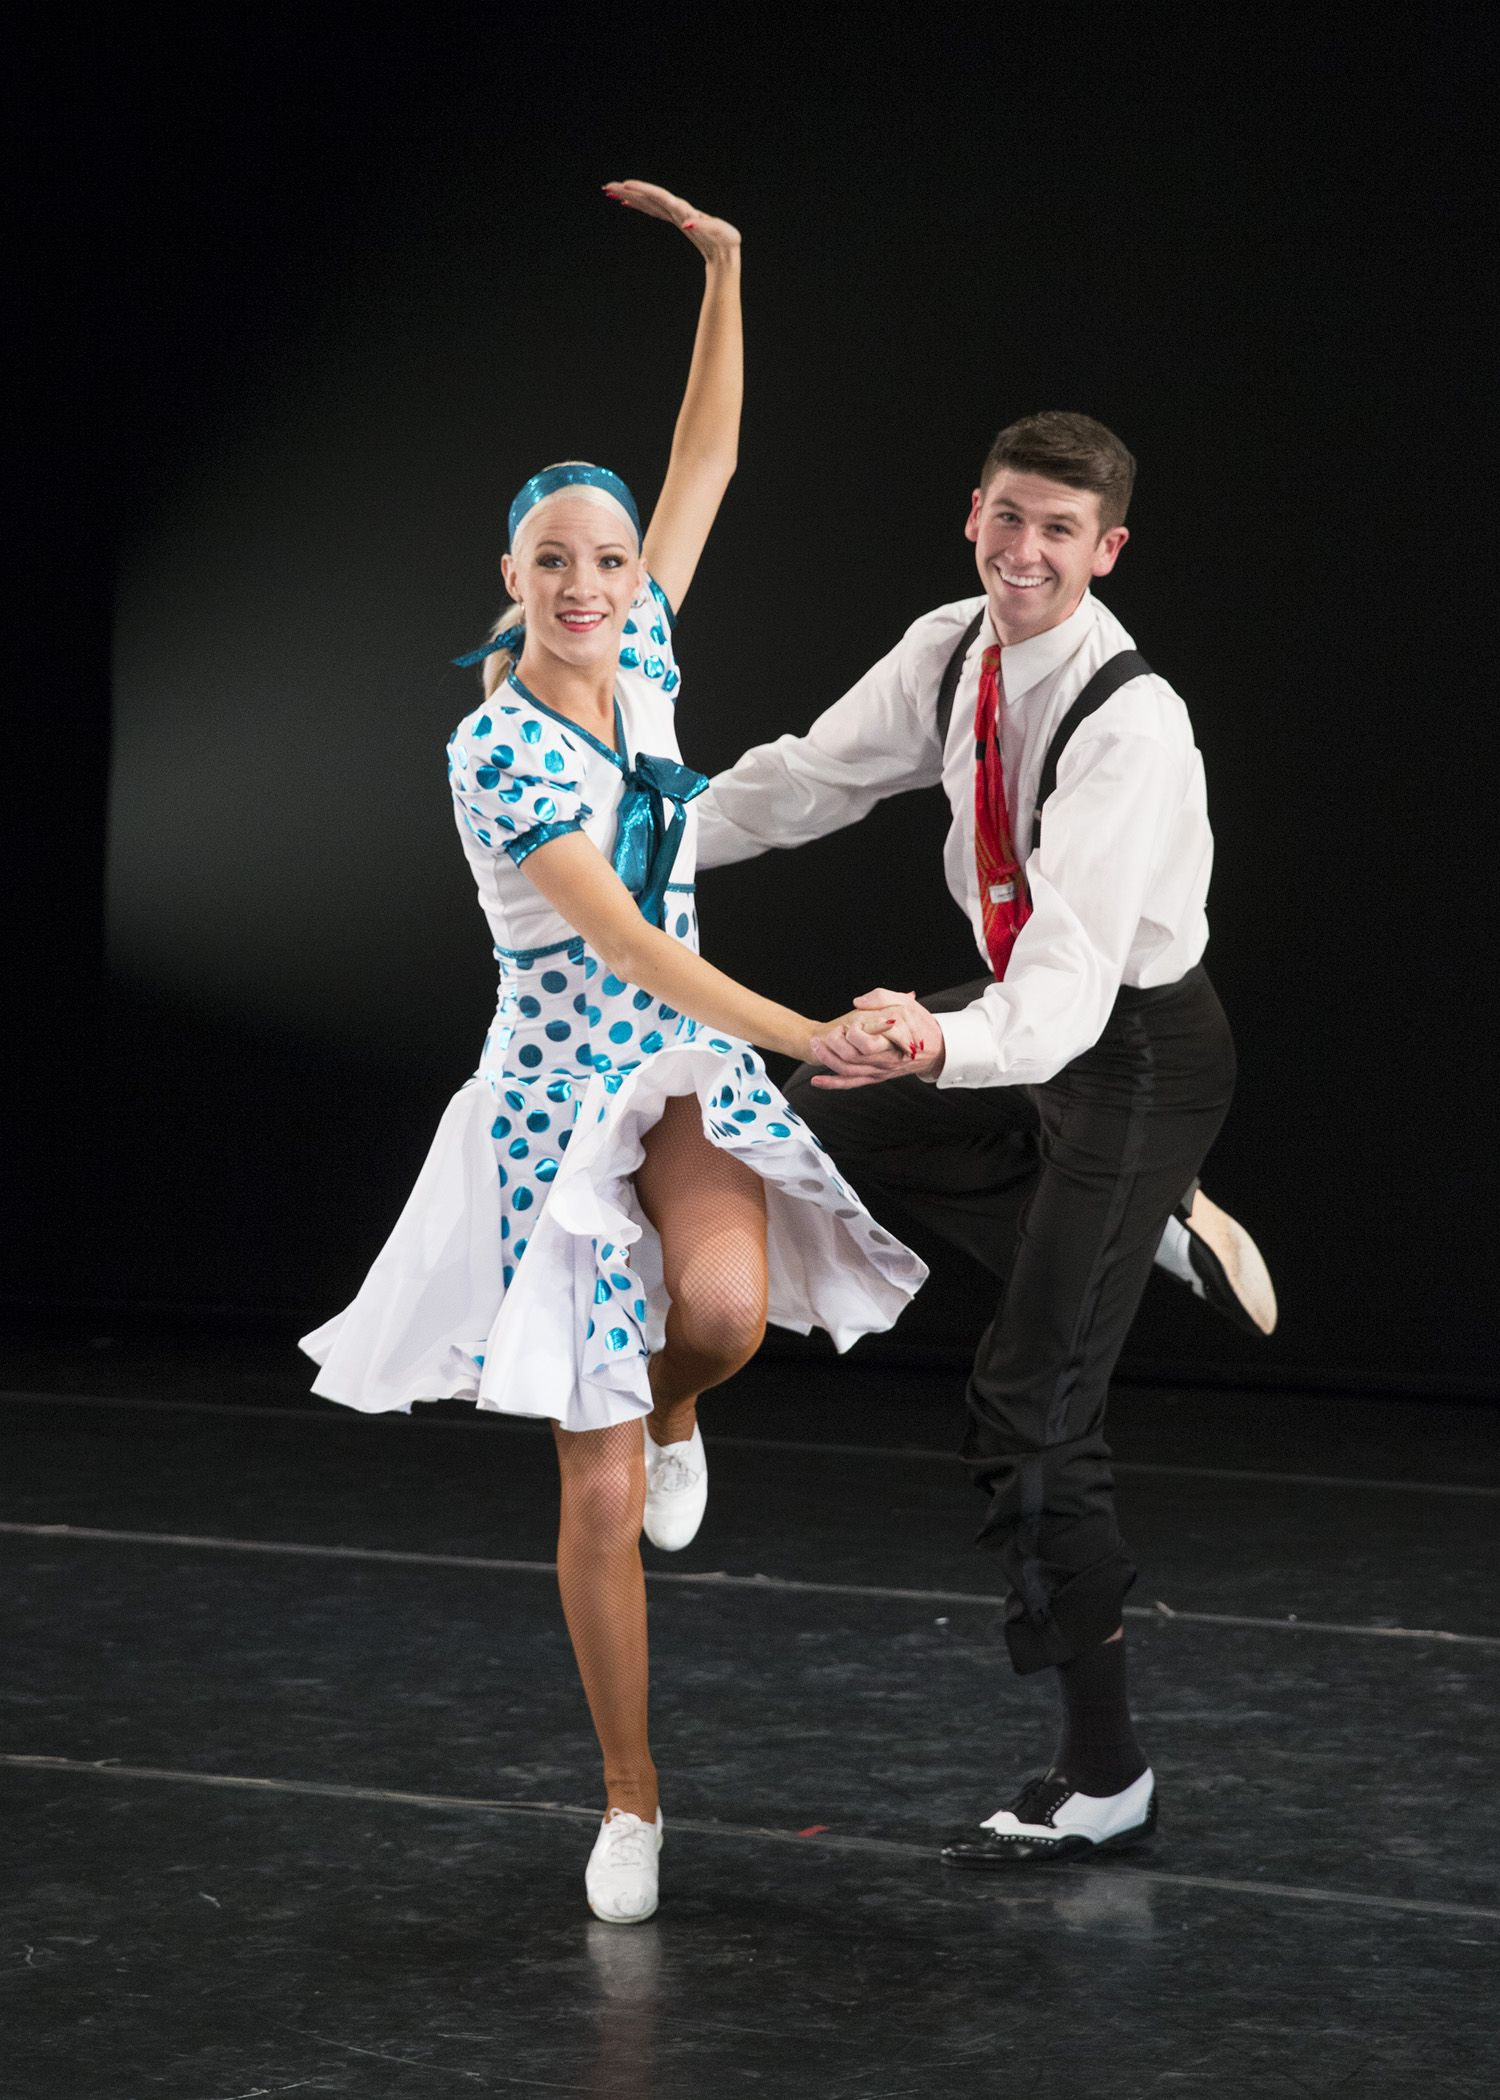 Jump And Jive With Ballroom Dance Company April 12 13 Byu College Of Fine Arts And Communications Dance Company Ballroom Dance Swing Dancing